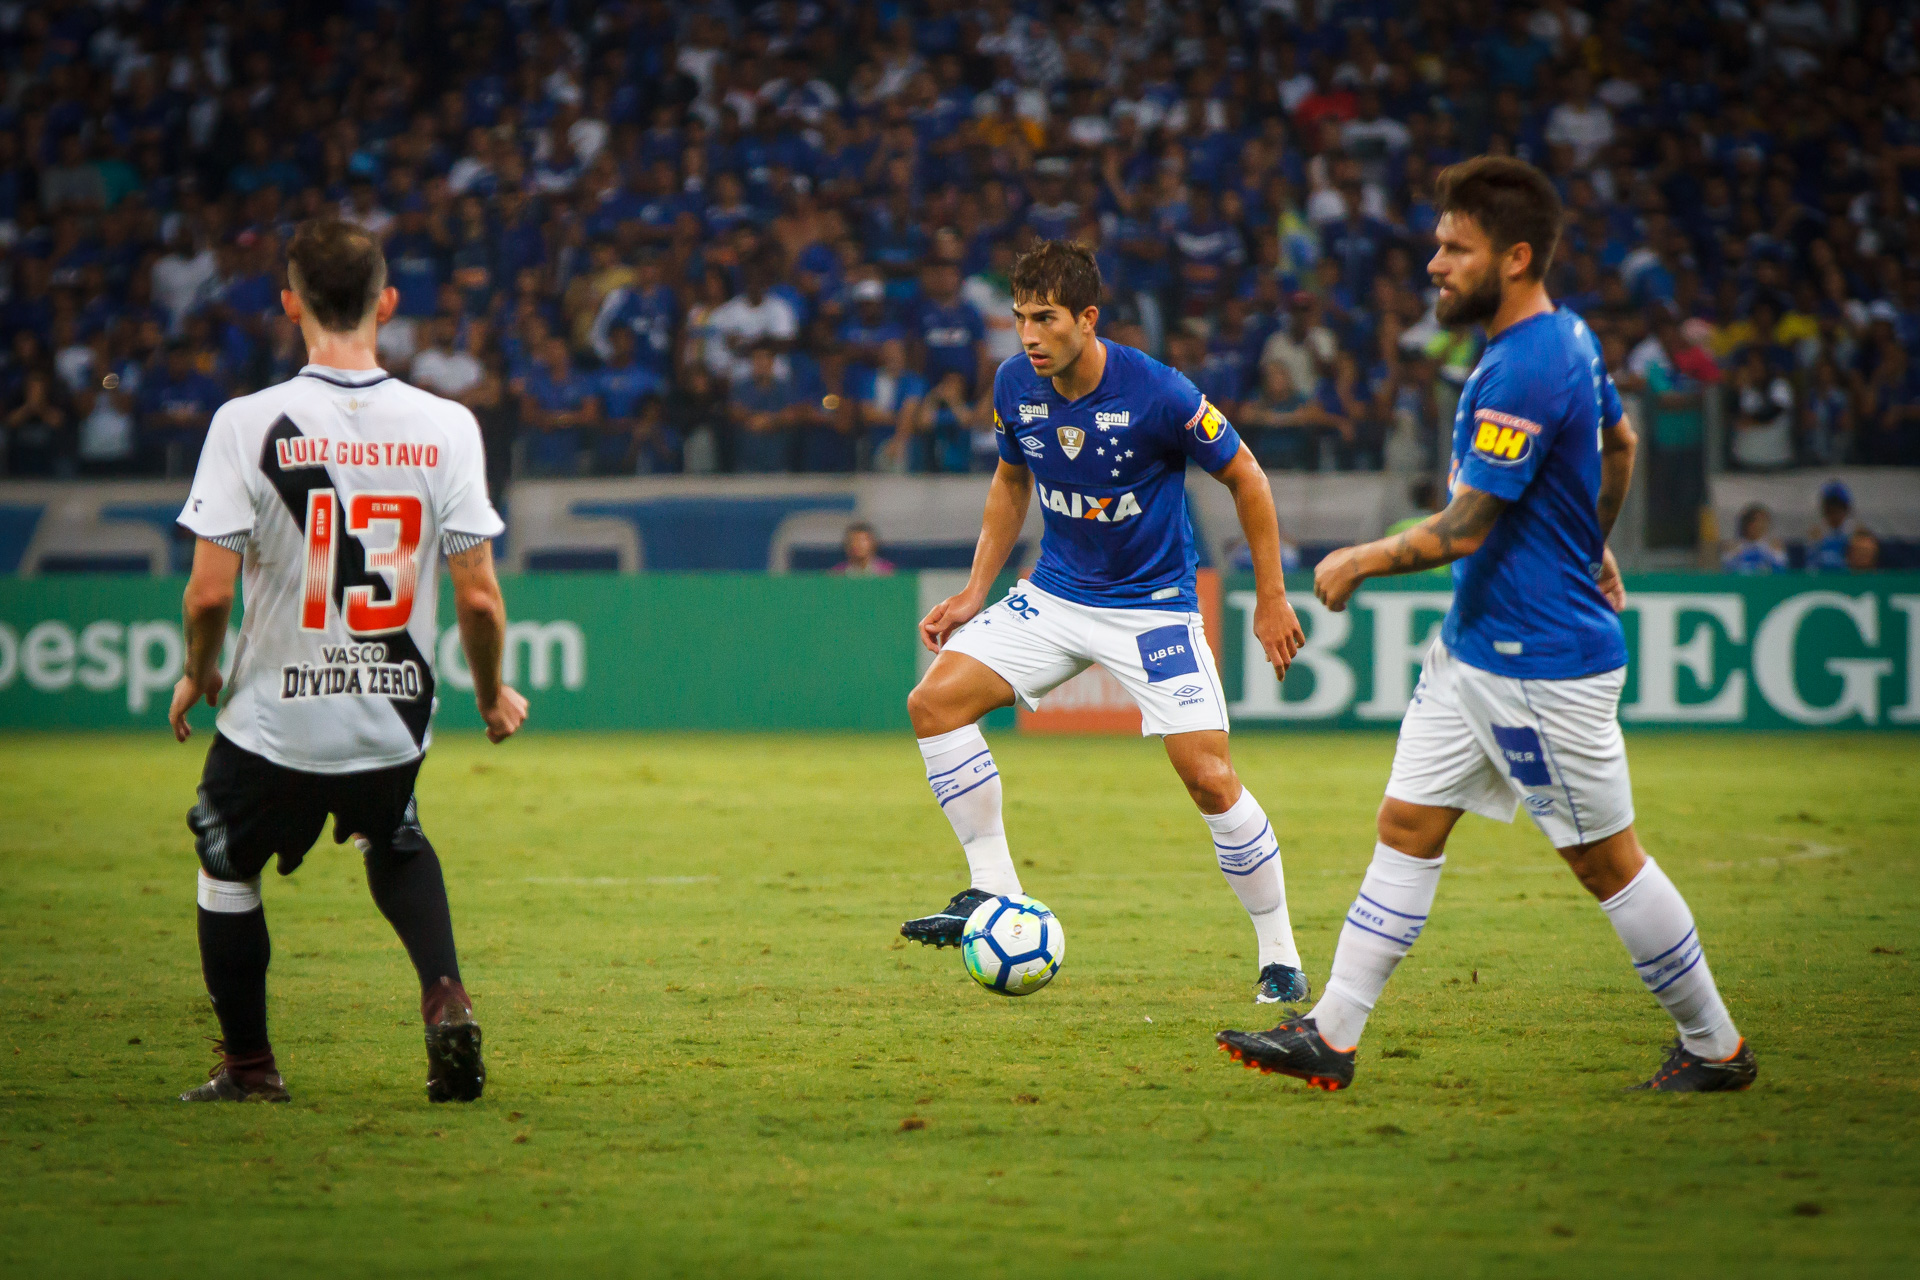 ee72670238 Vasco x Cruzeiro  siga os lances e o placar AO VIVO da partida do ...